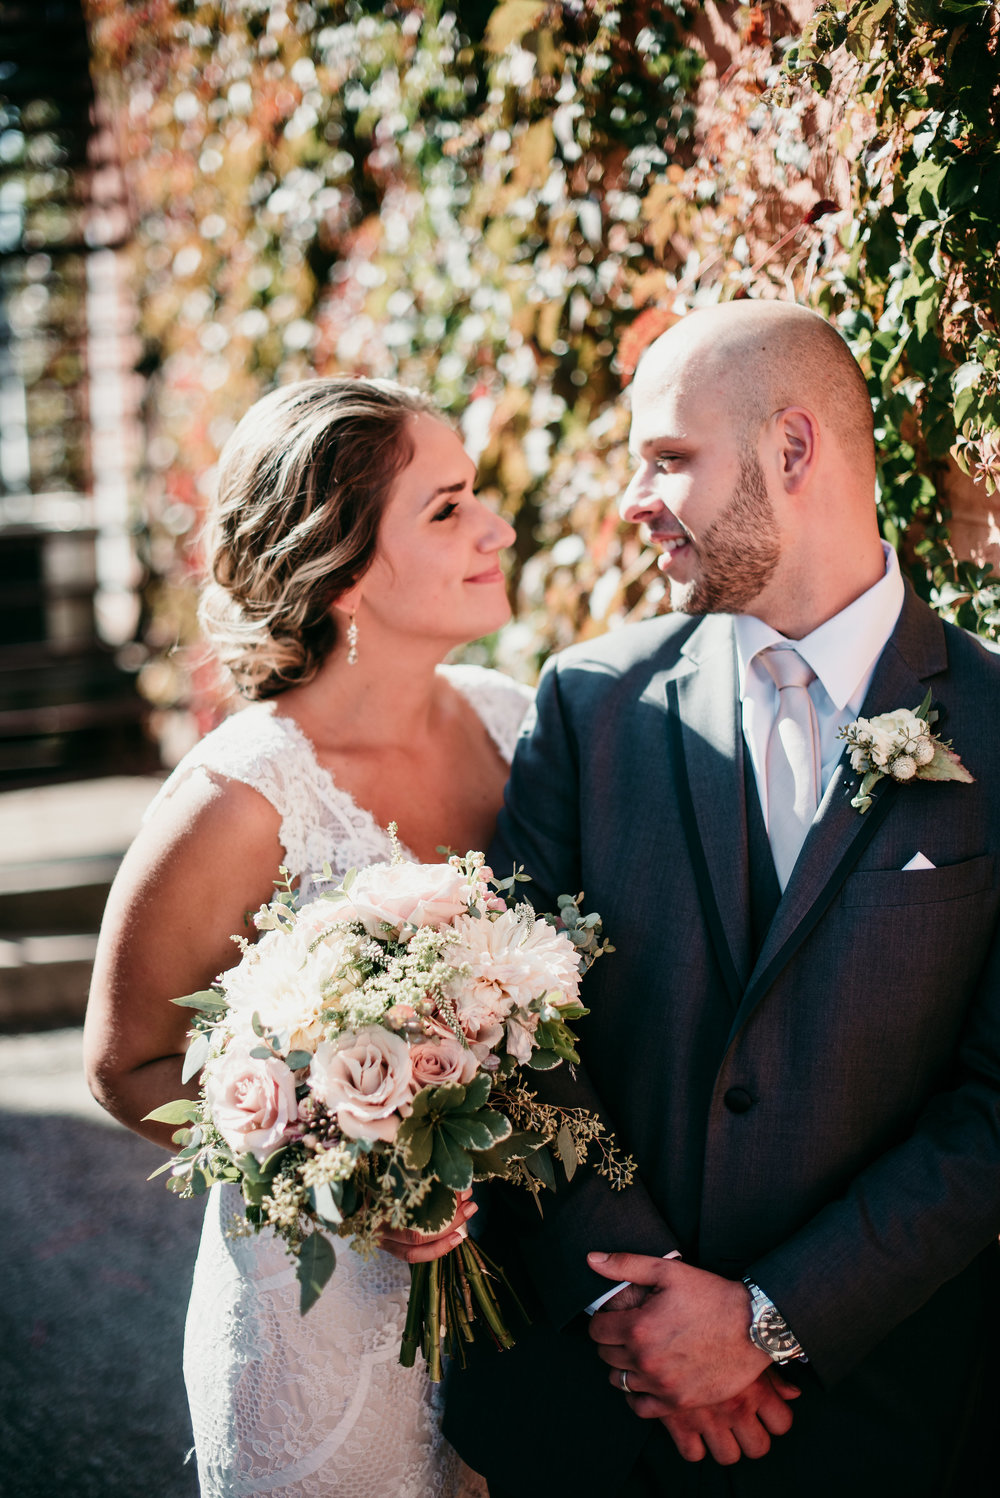 Mr. & Mrs. Obniski - After a few meetings, I can say that these guys look at each other like this often... heart eyes all the way. Photo: Tara Draper Photography